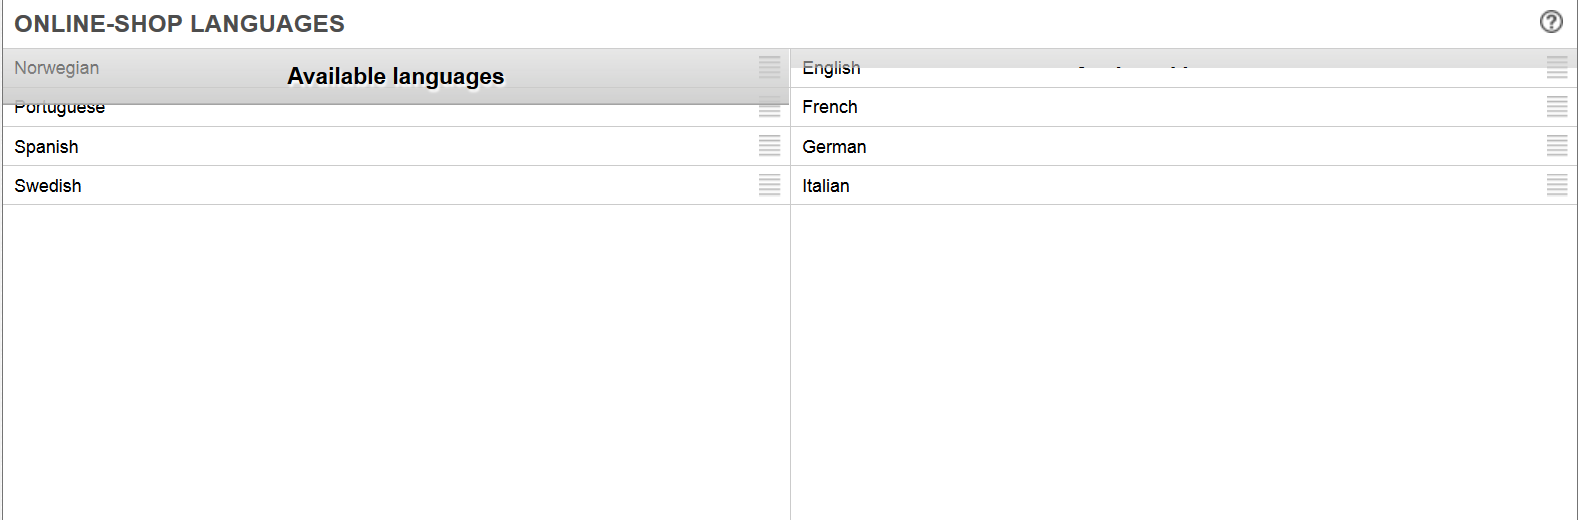 Online-Shop_Languages.PNG